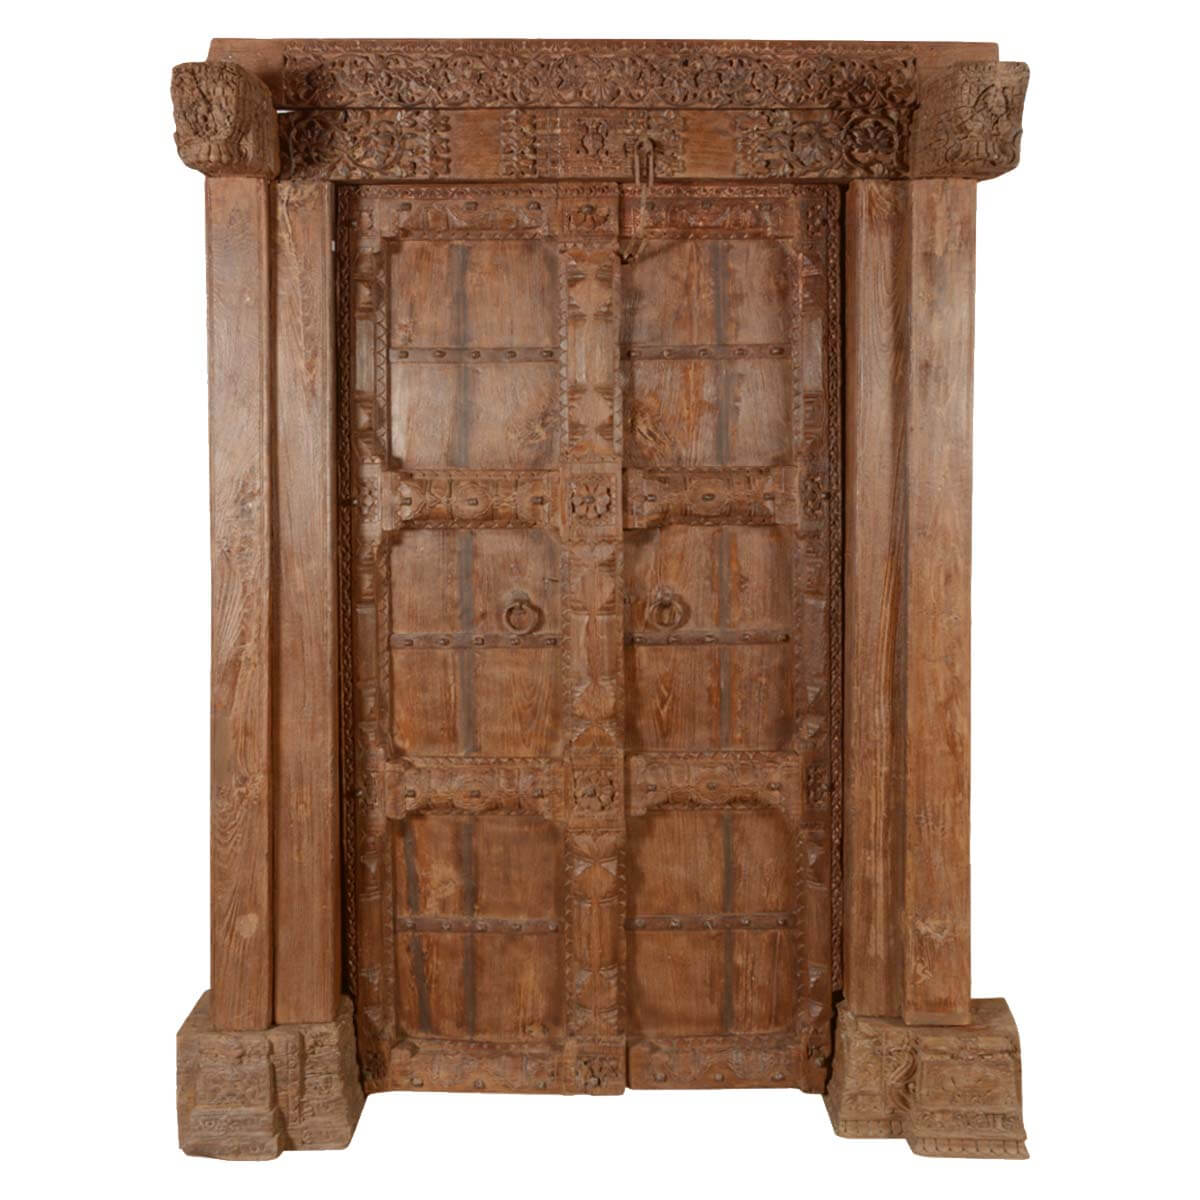 Early elizabethan reclaimed wood hand carved double door for Hand carved wood doors